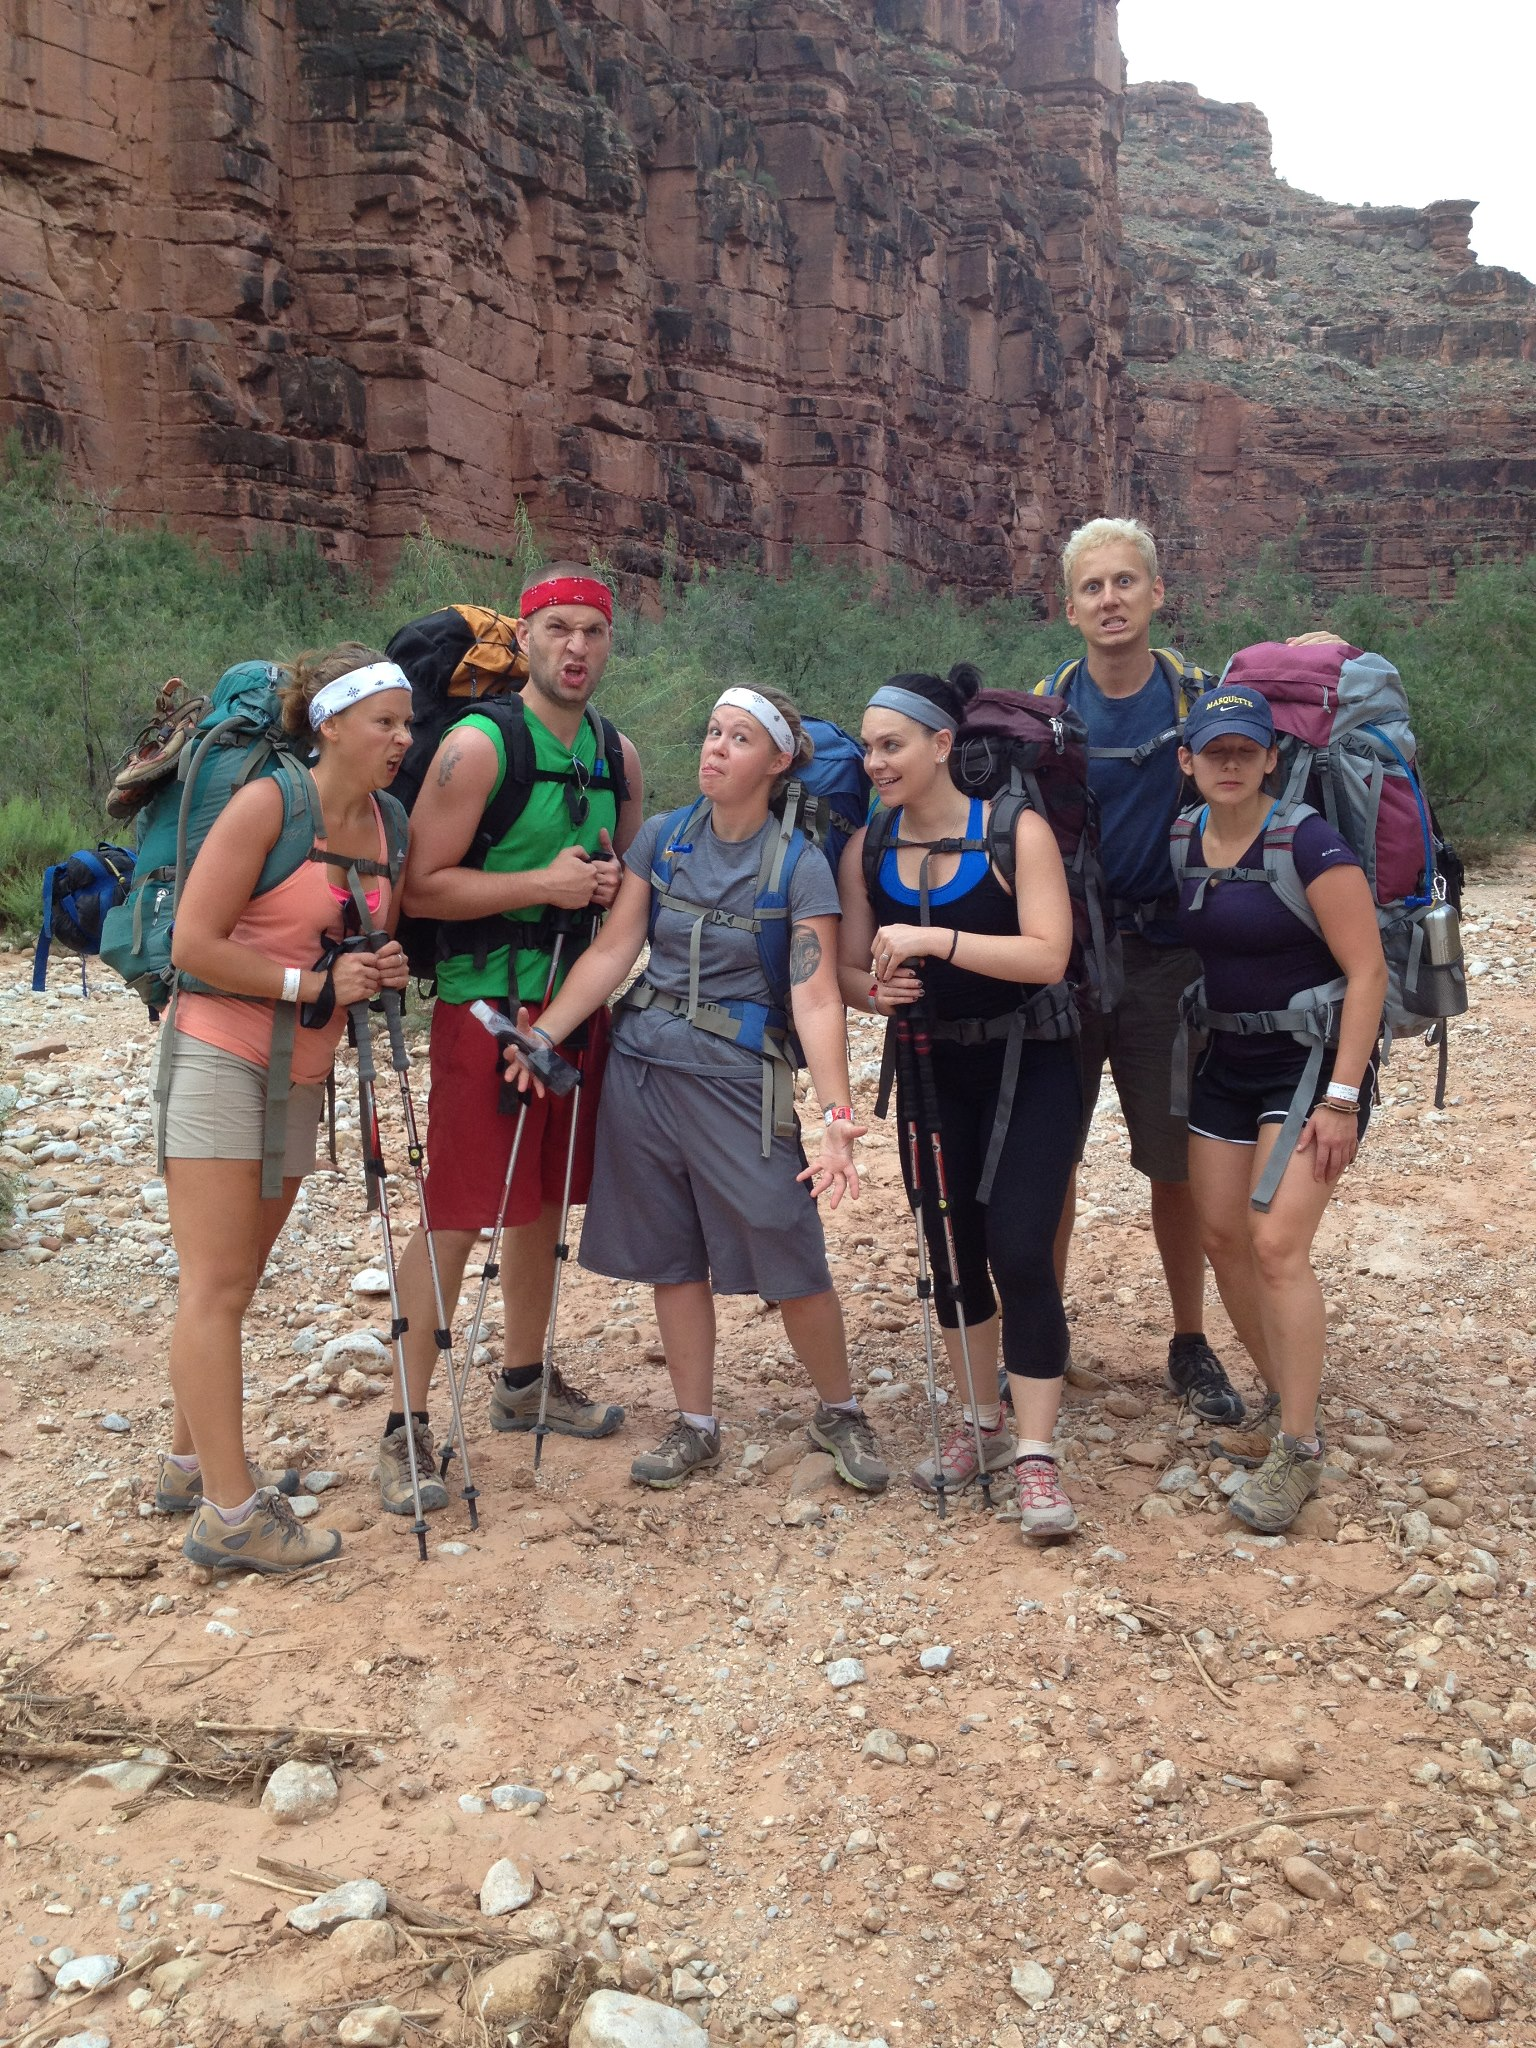 The group hiking out